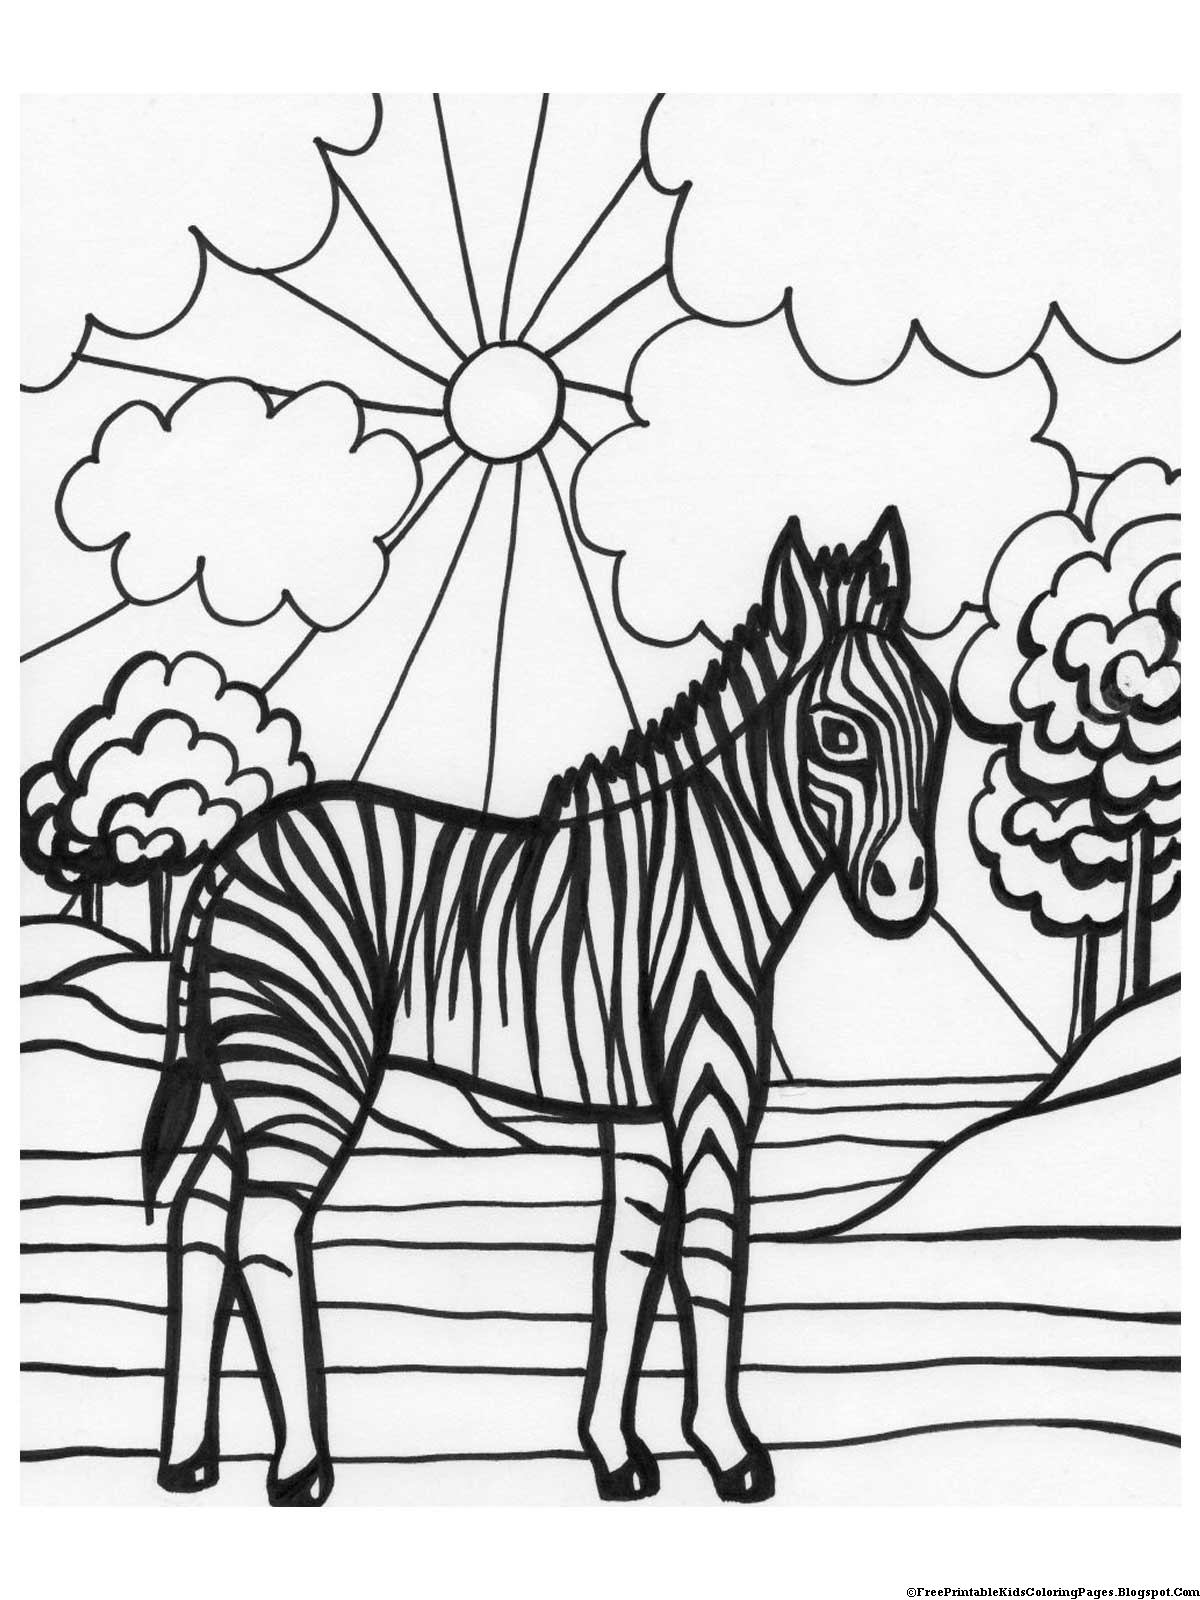 for coloring 40 top free coloring pages we need fun coloring for